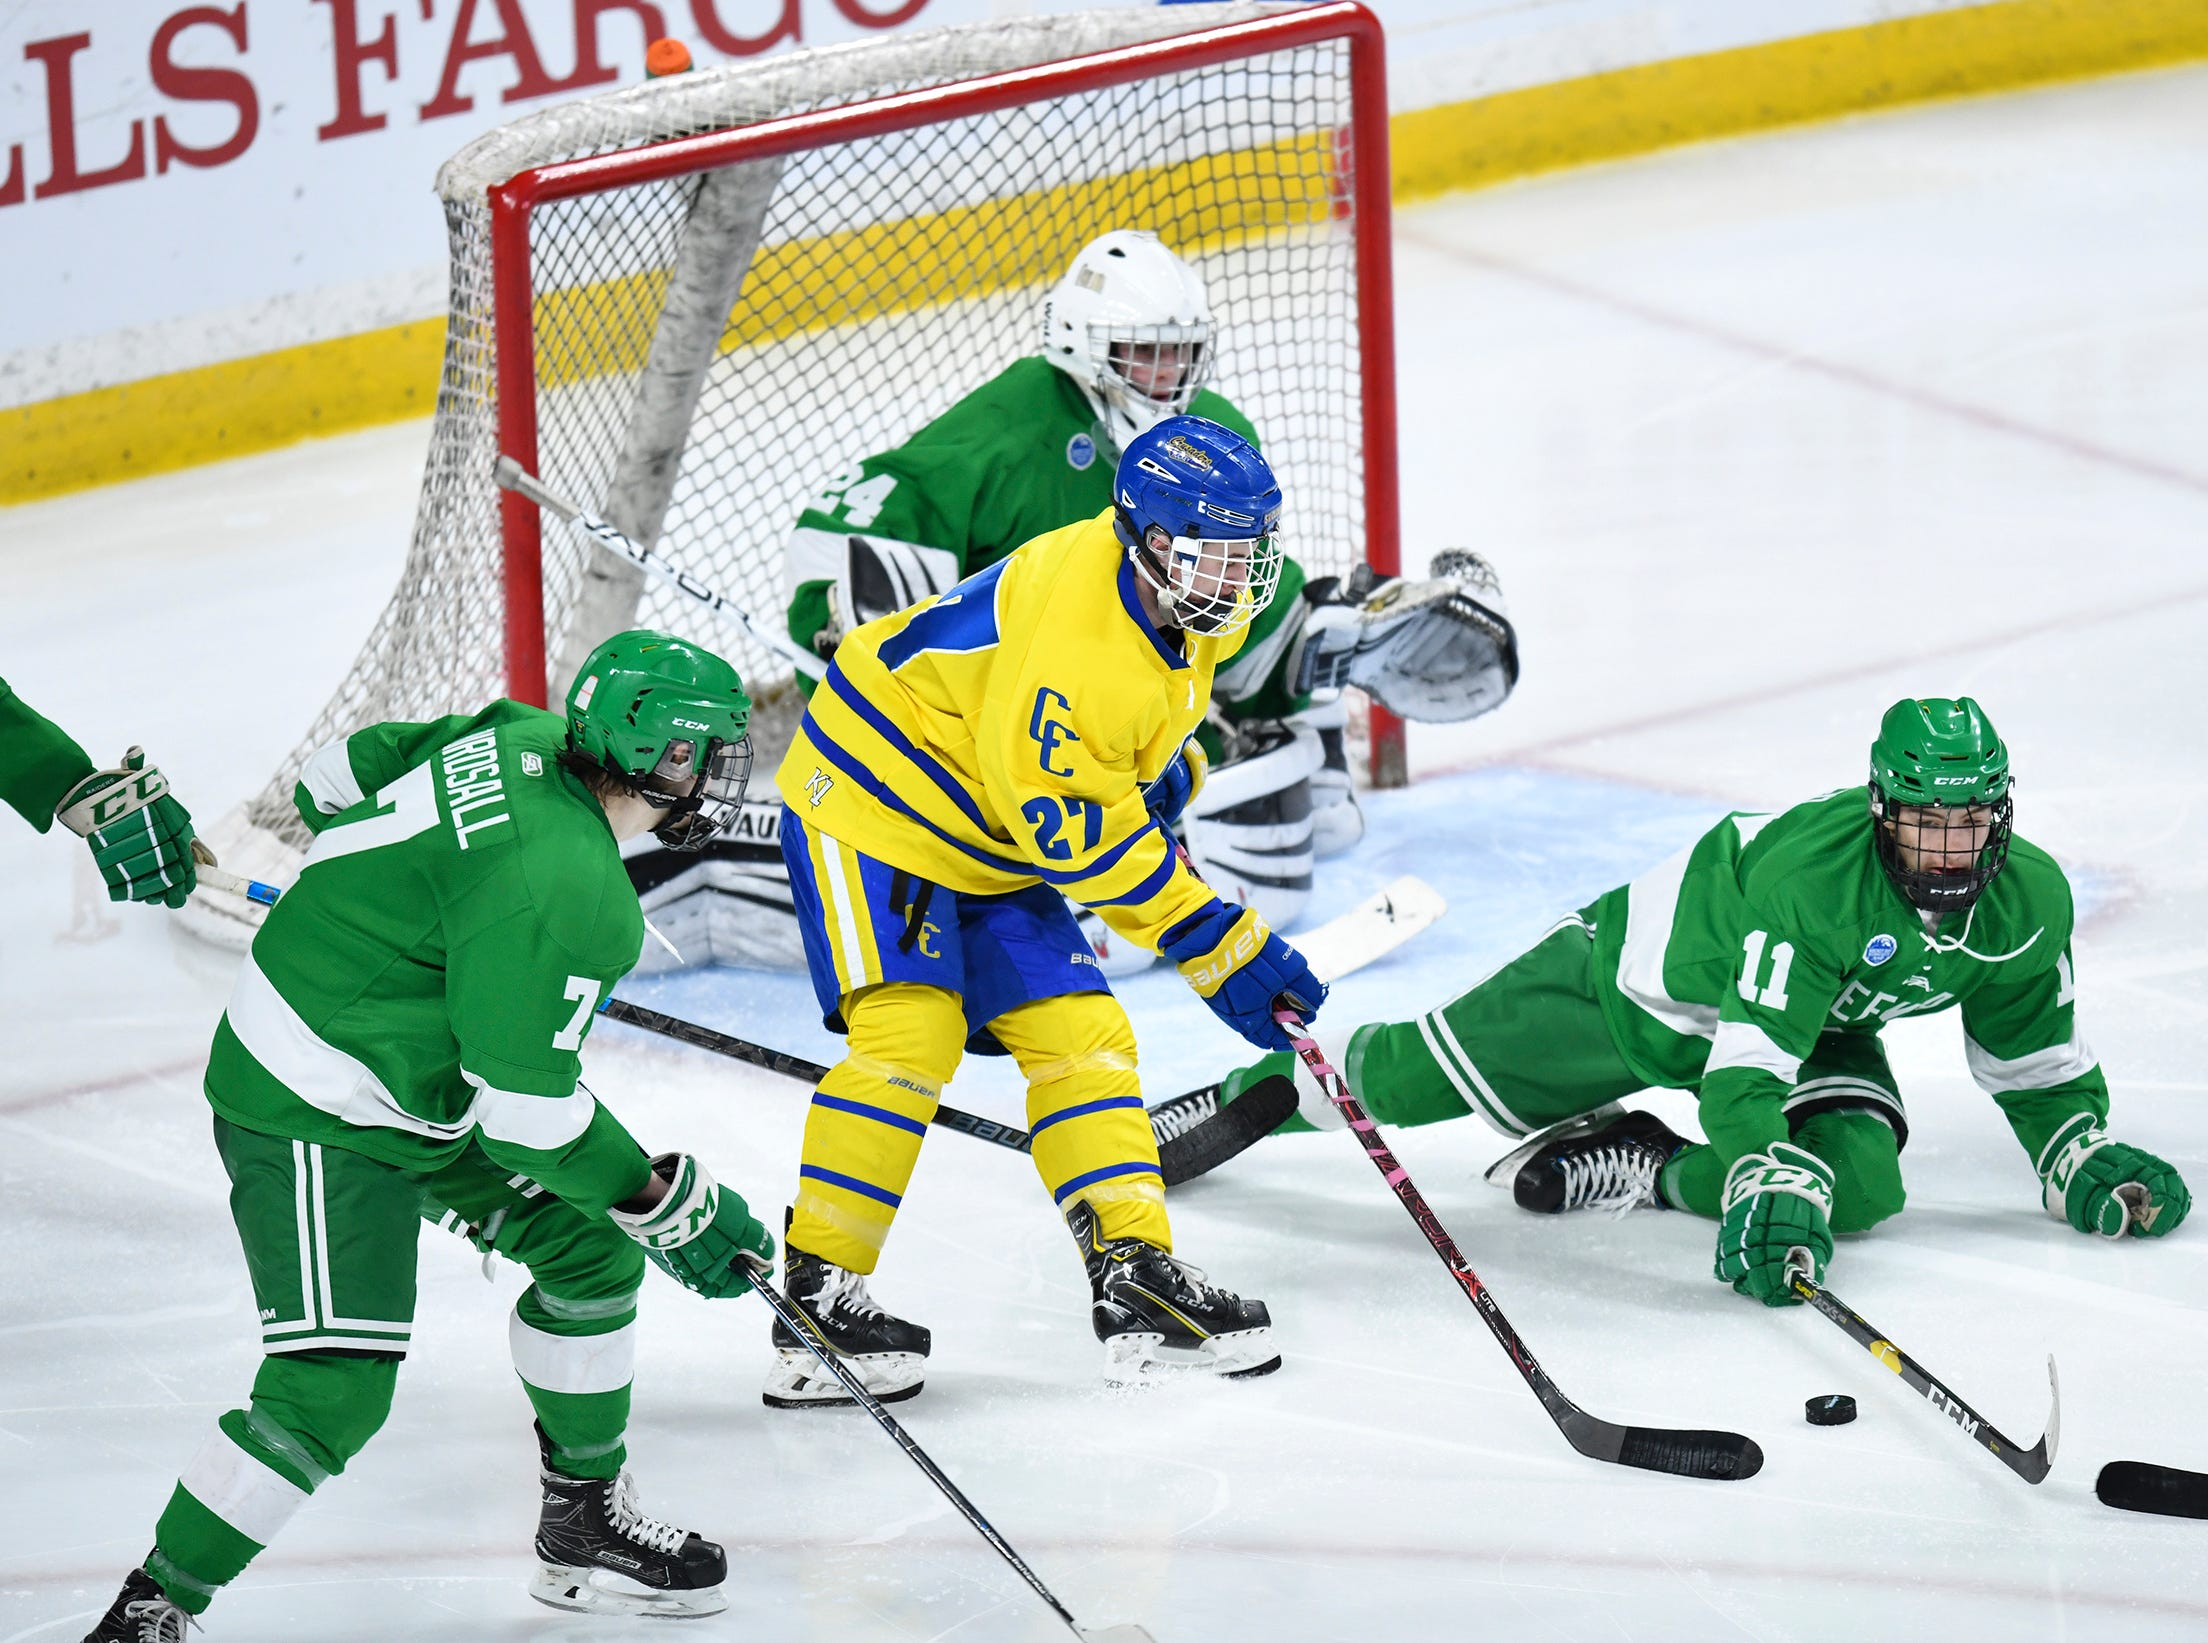 Cathedral's Blake Perbix works with the puck in front of the Greenway goal during the state Class A championship game Saturday, March 9, 2019, at the Xcel Energy Center in St. Paul.